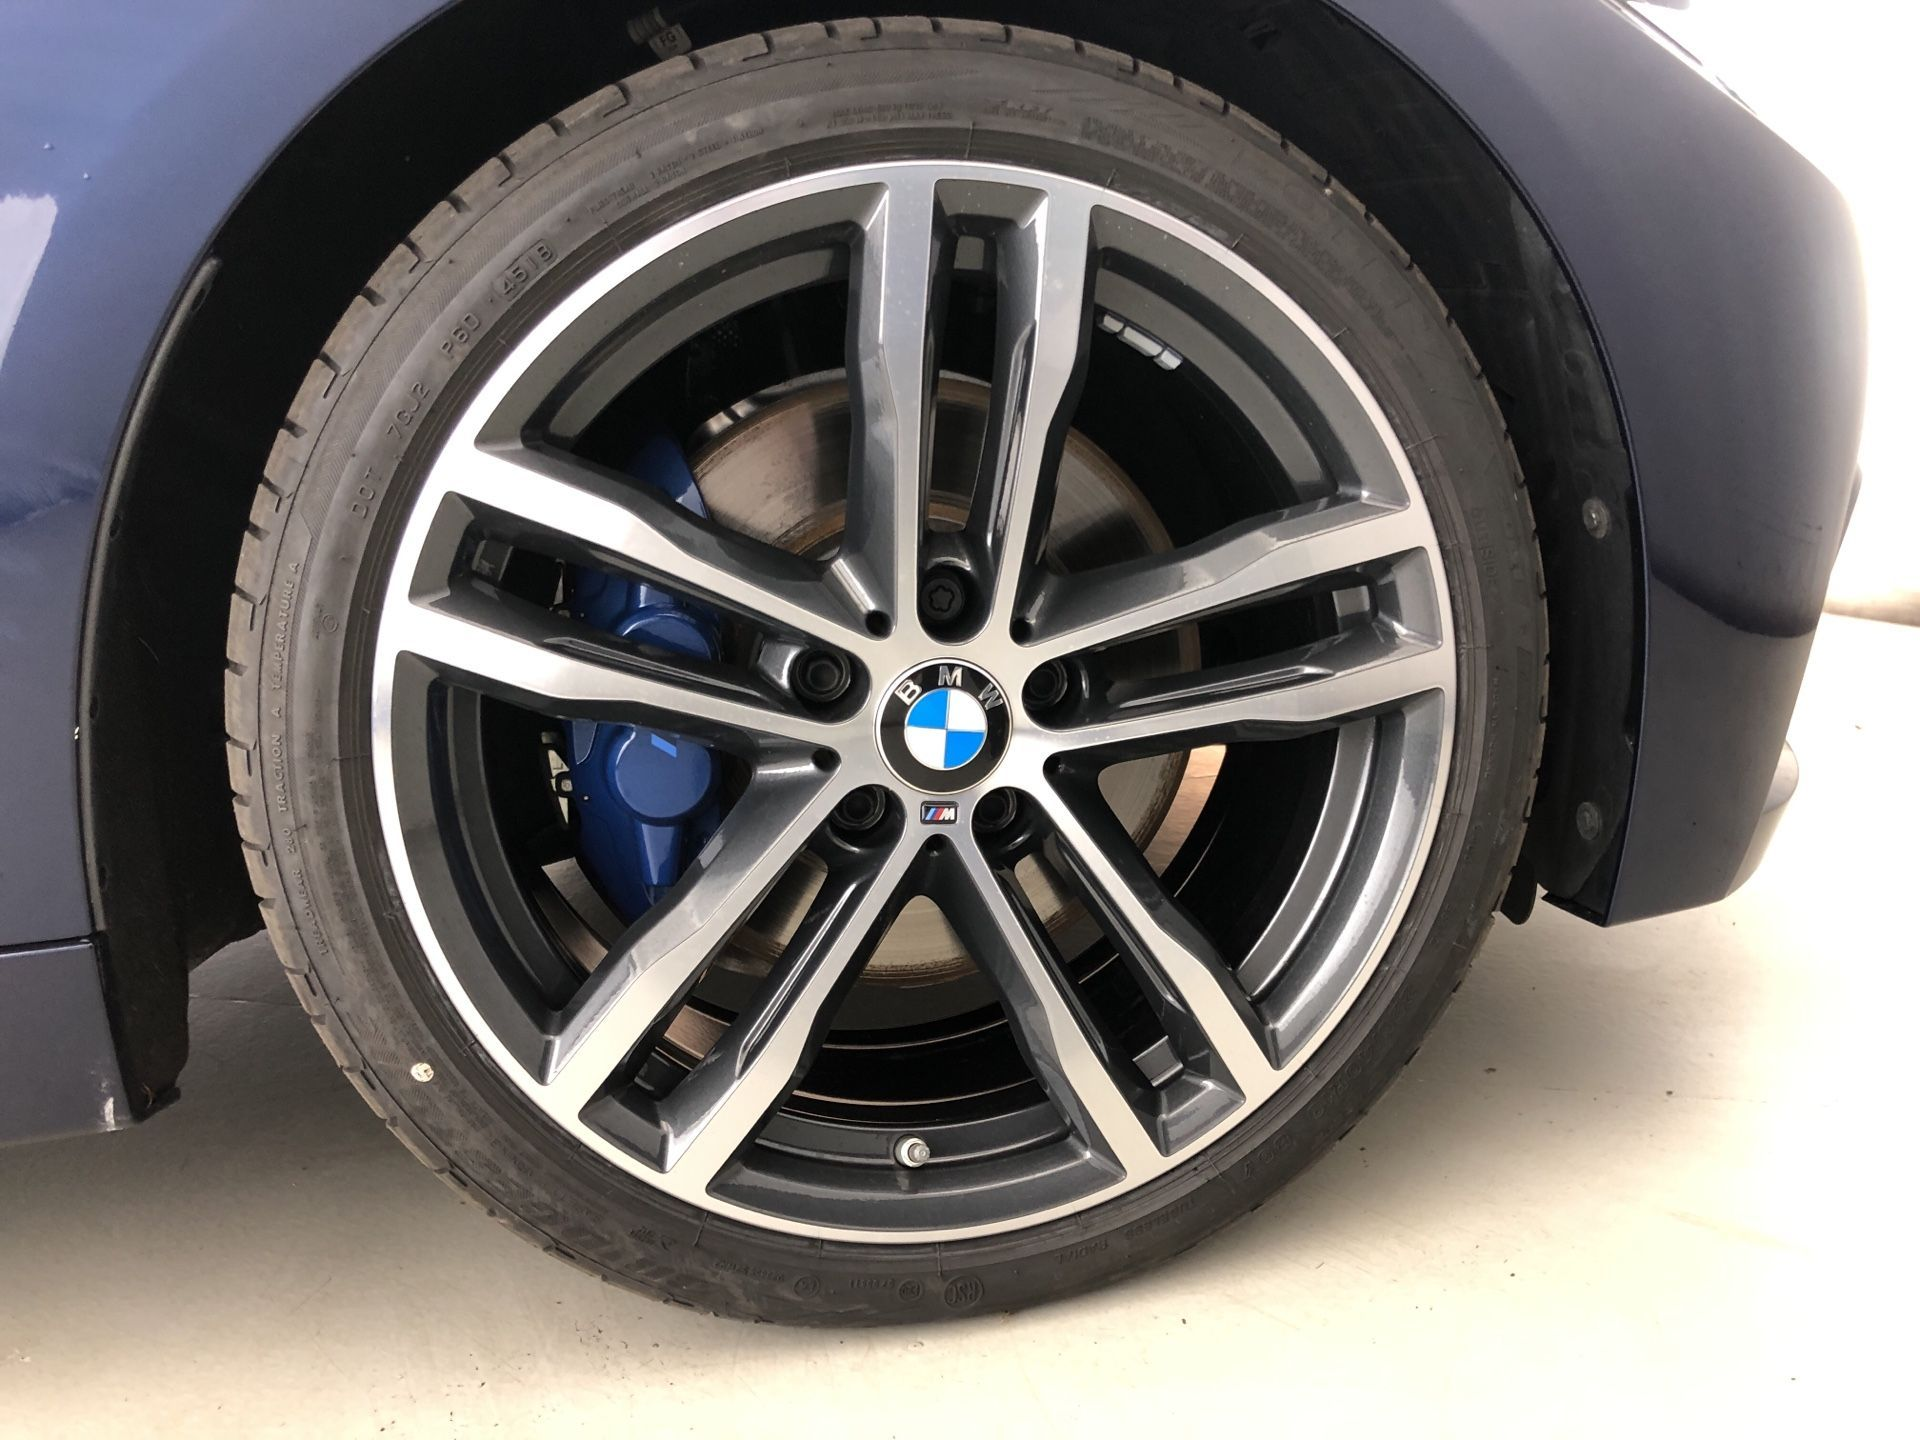 Image 7 - BMW 420d M Sport Coupe (YJ68YWP)